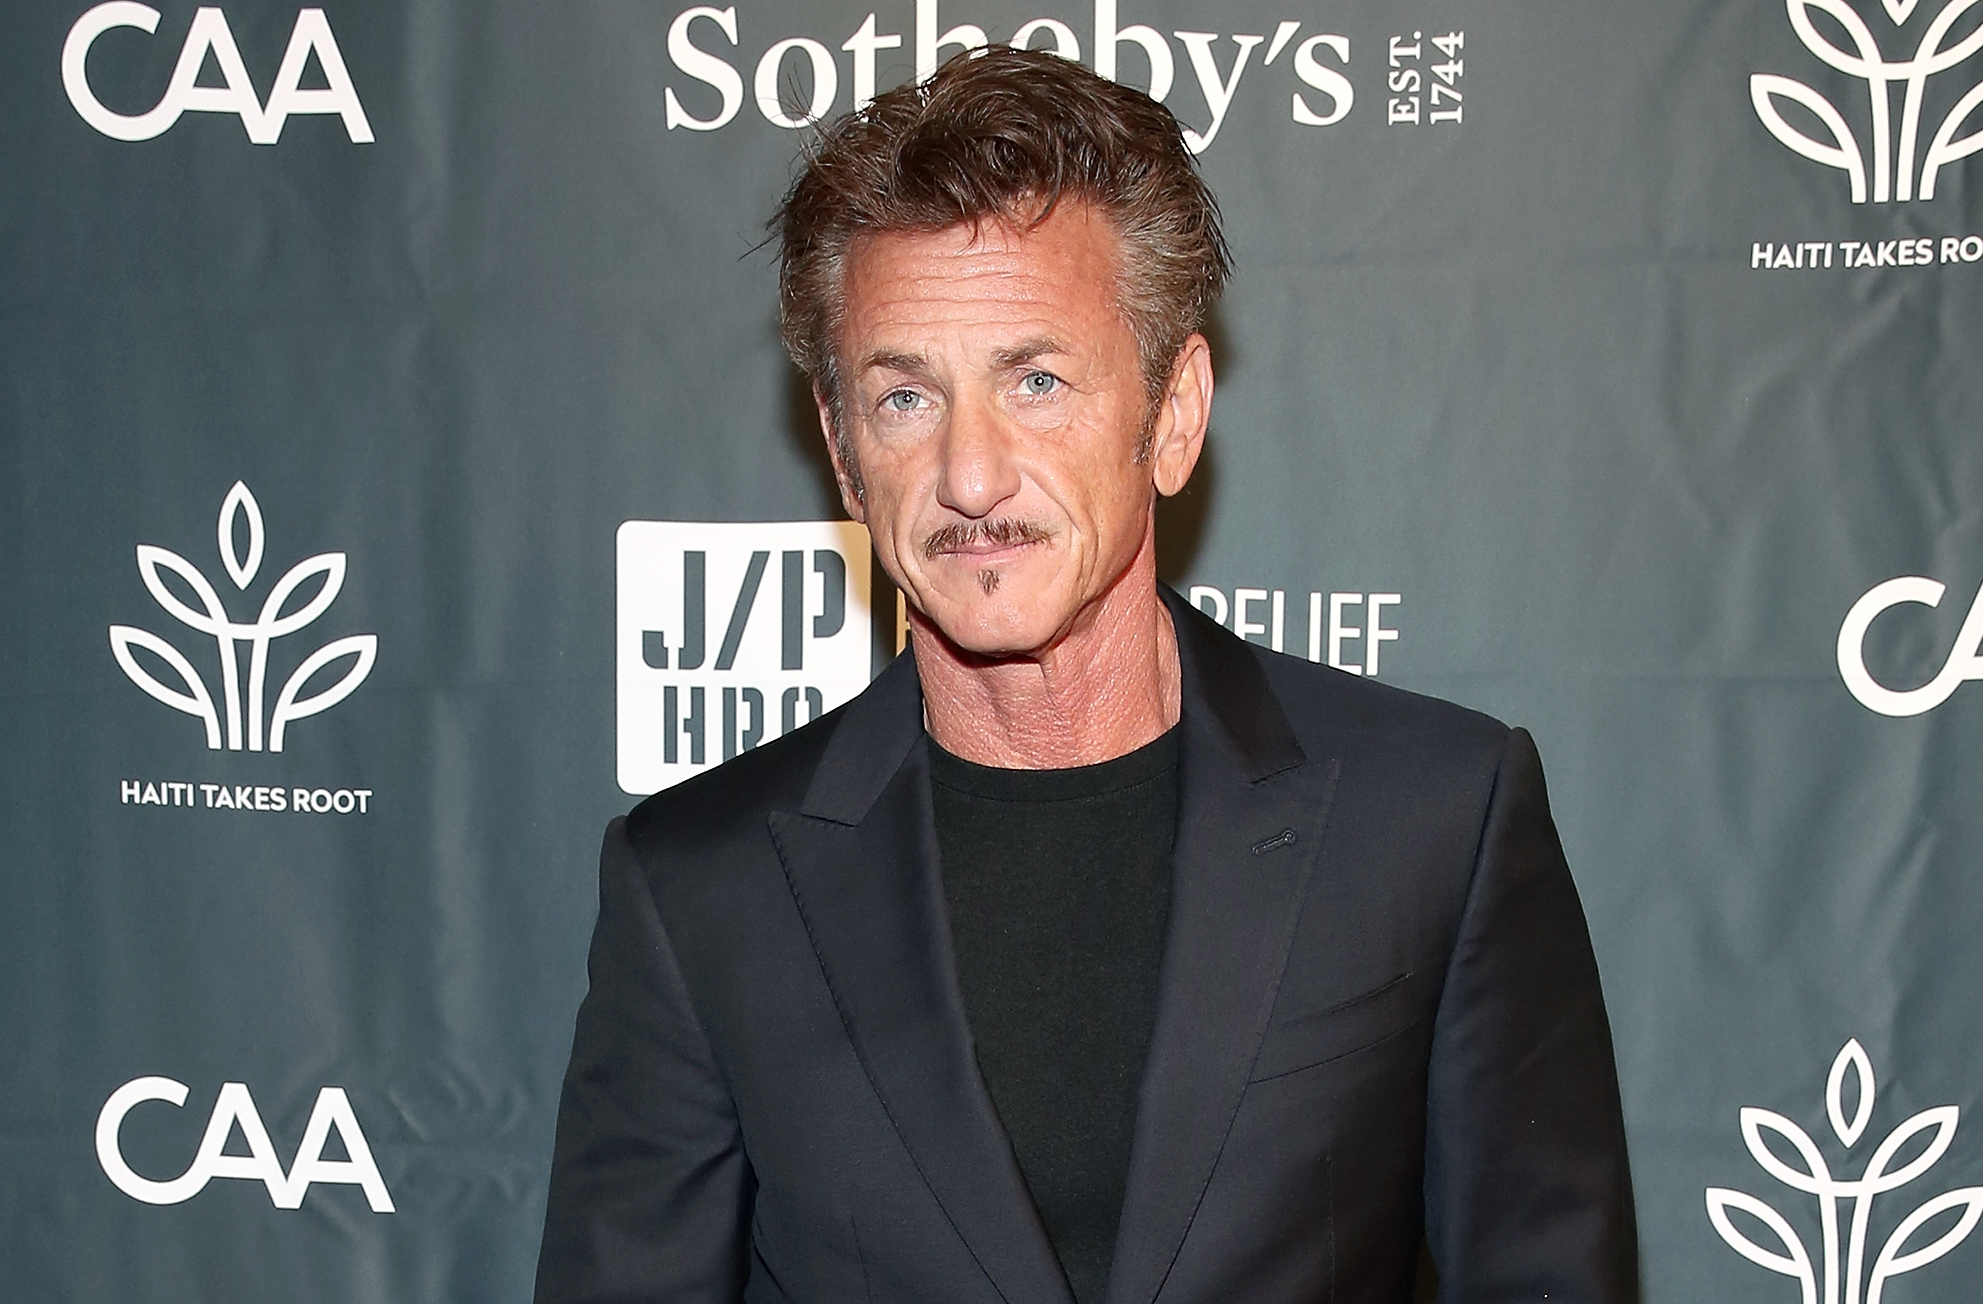 Sean Penn attends The Sean Penn & Friends Haiti Takes Root Benefit Dinner & Auction Supporting J/P Haitian Relief Organization at Sotheby's on May 5, 2017 in New York City.